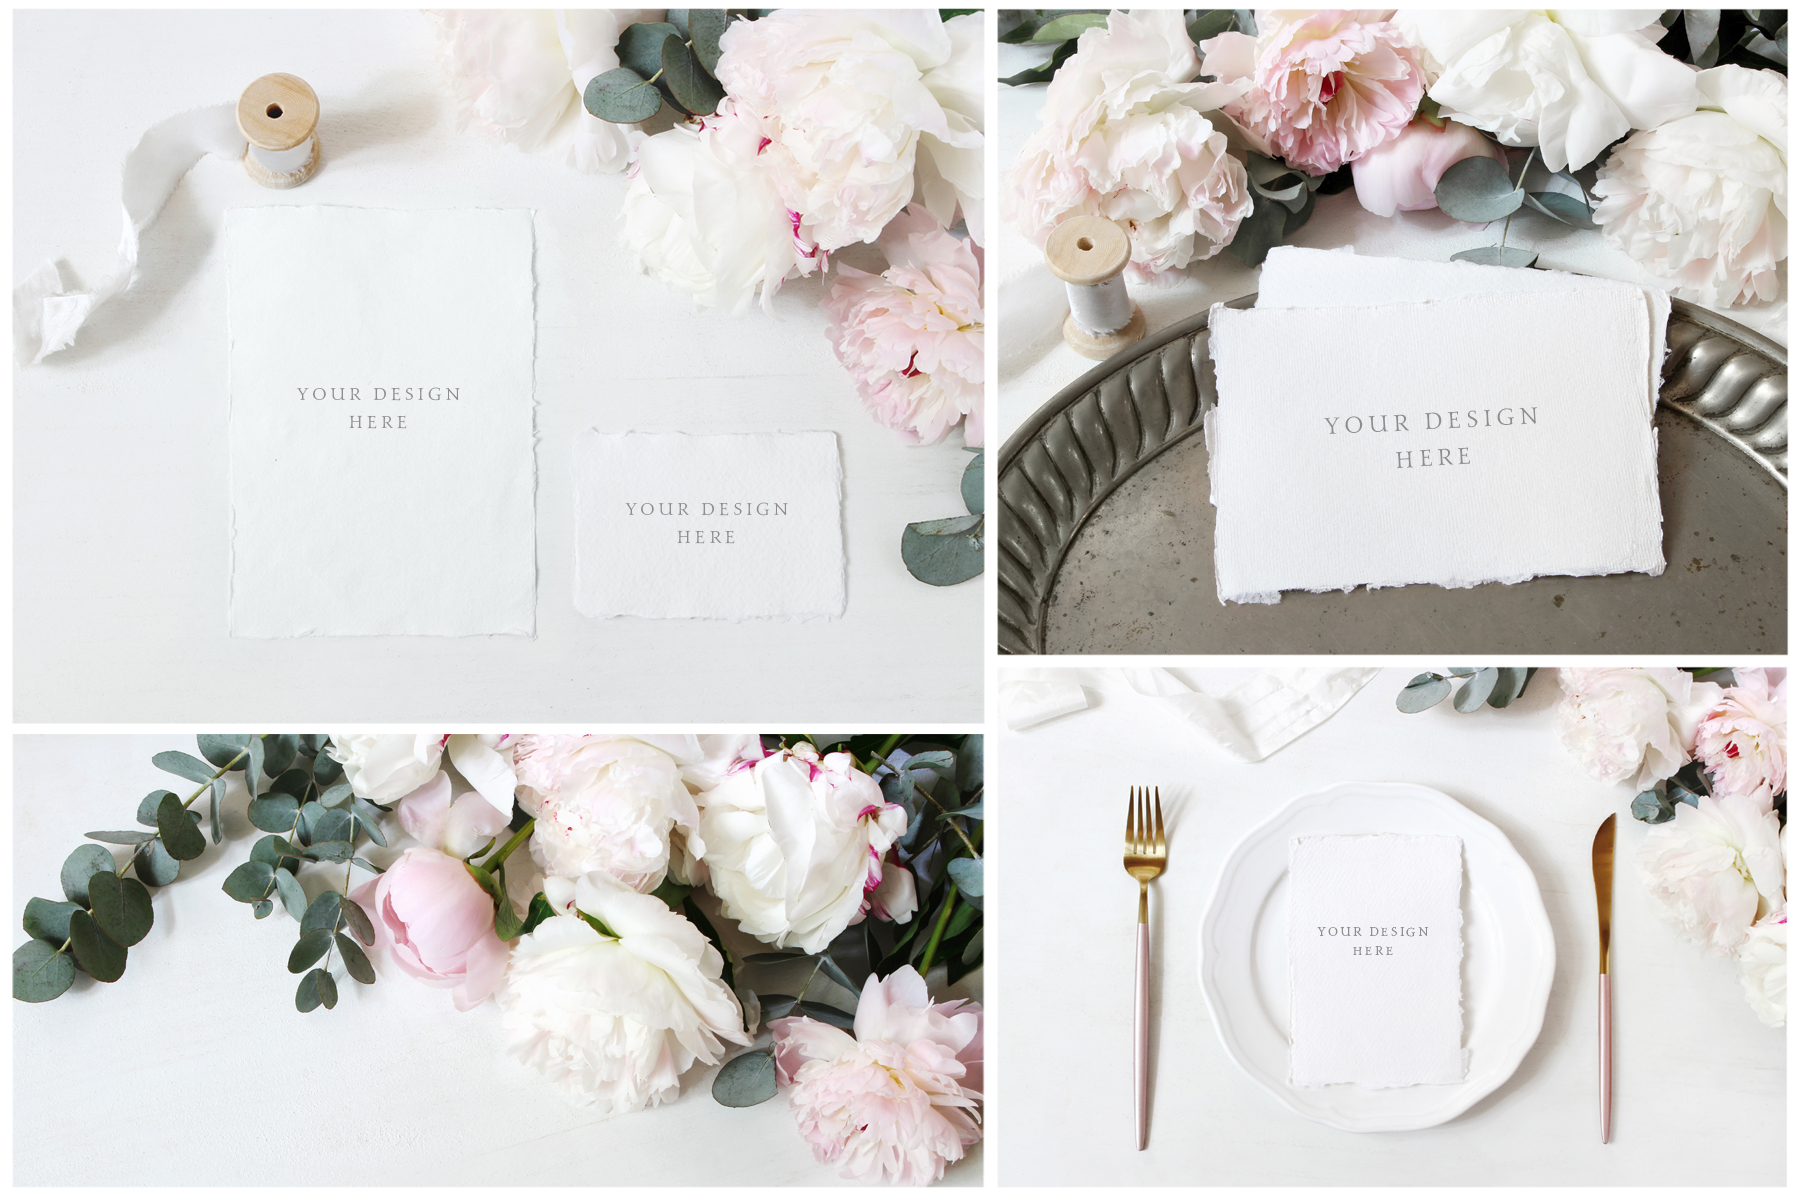 Vintage peony wedding mockups & stock photo bundle example image 4